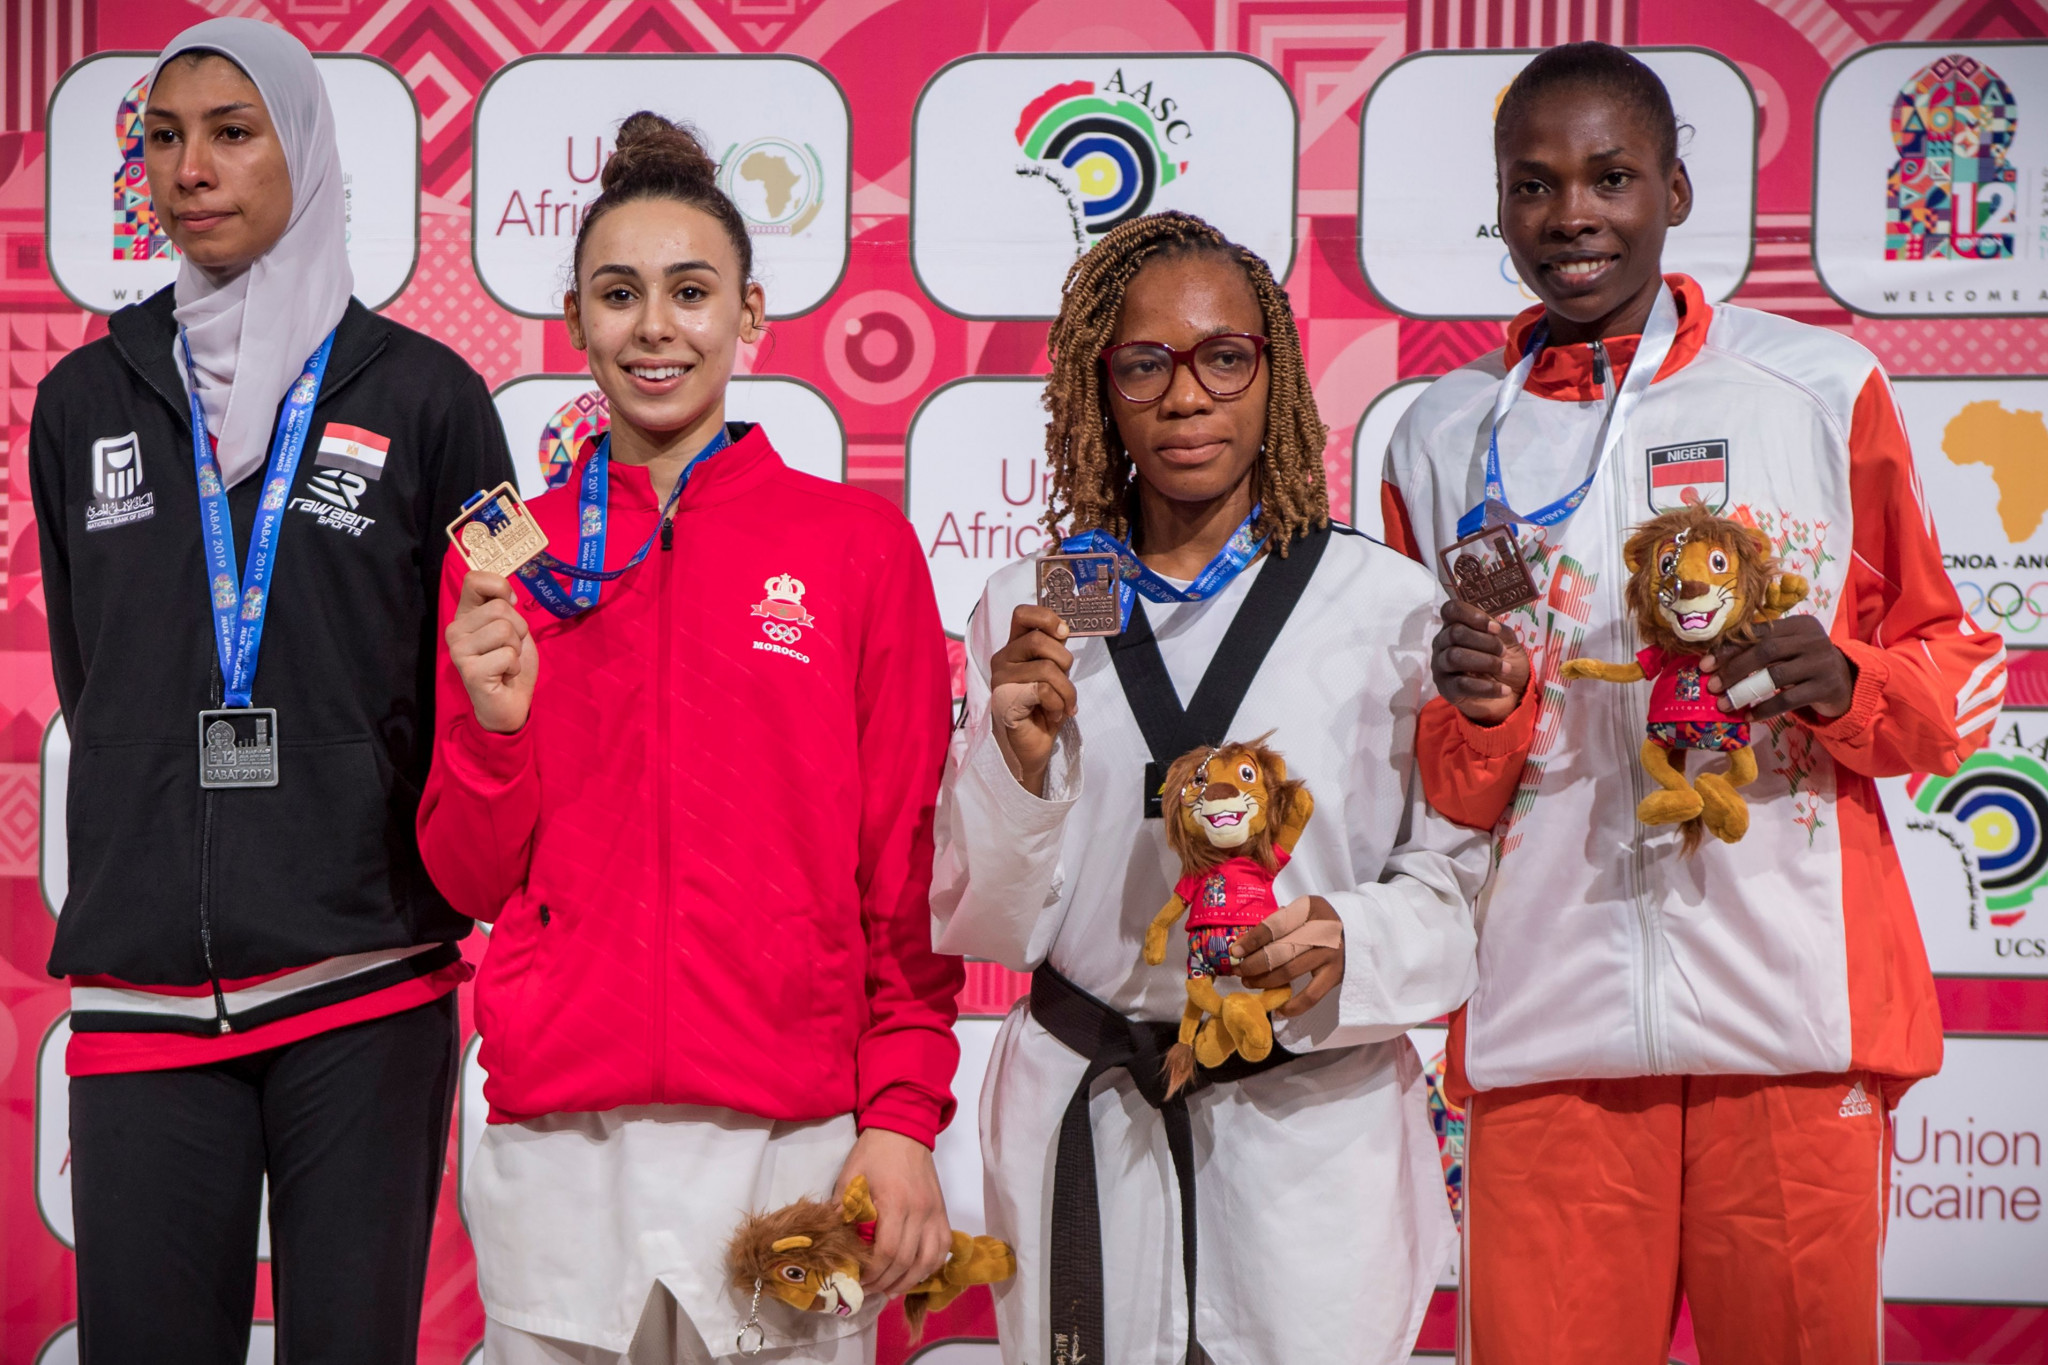 Nada Laaraj of Morocco won the women's under-57kg gold medal at the African Games ©Getty Images